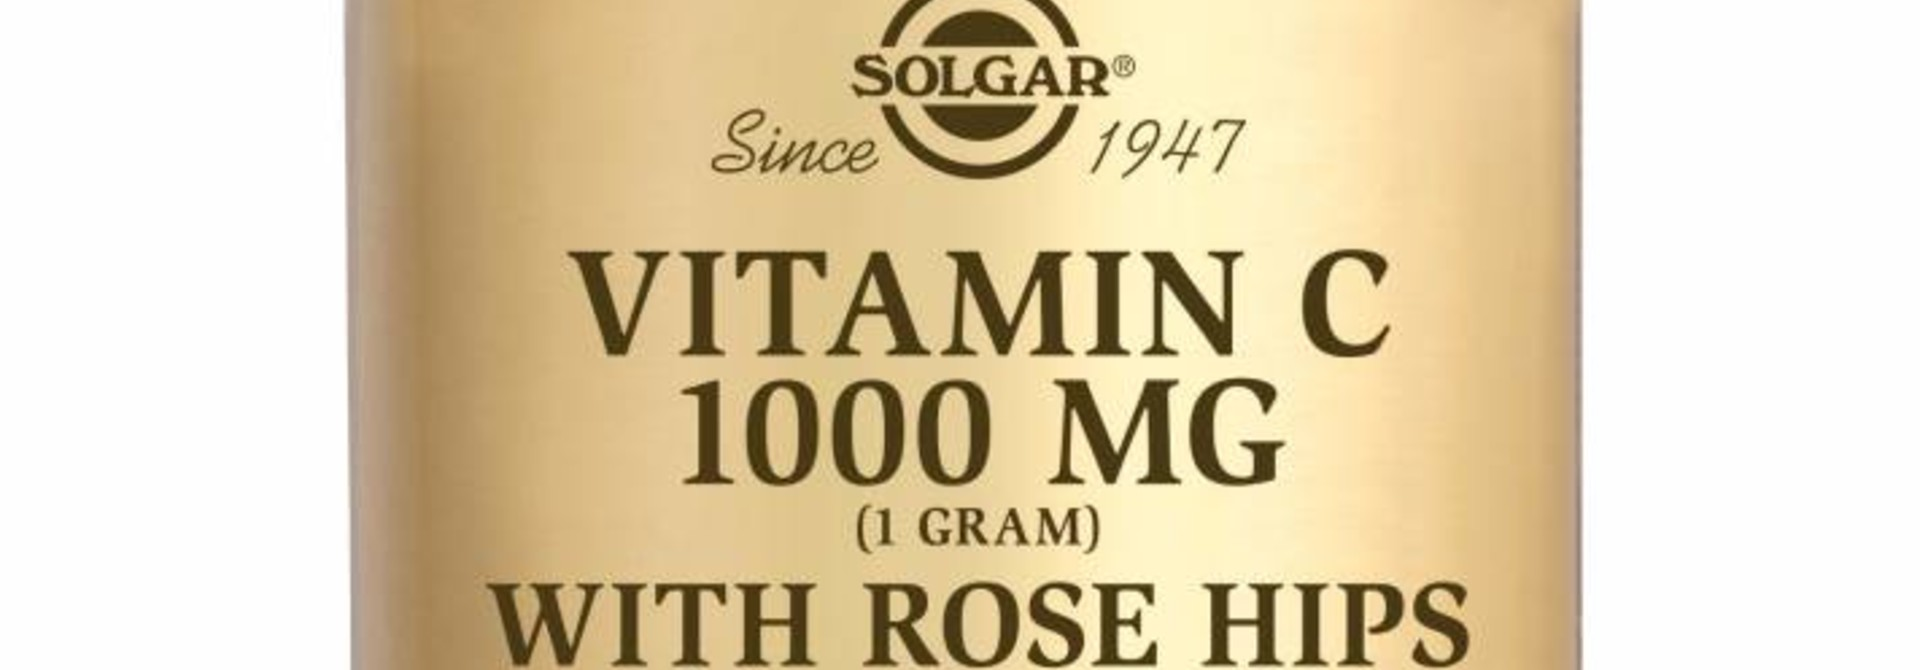 Vitamin C with Rose Hips 1000 mg 100 tabletten